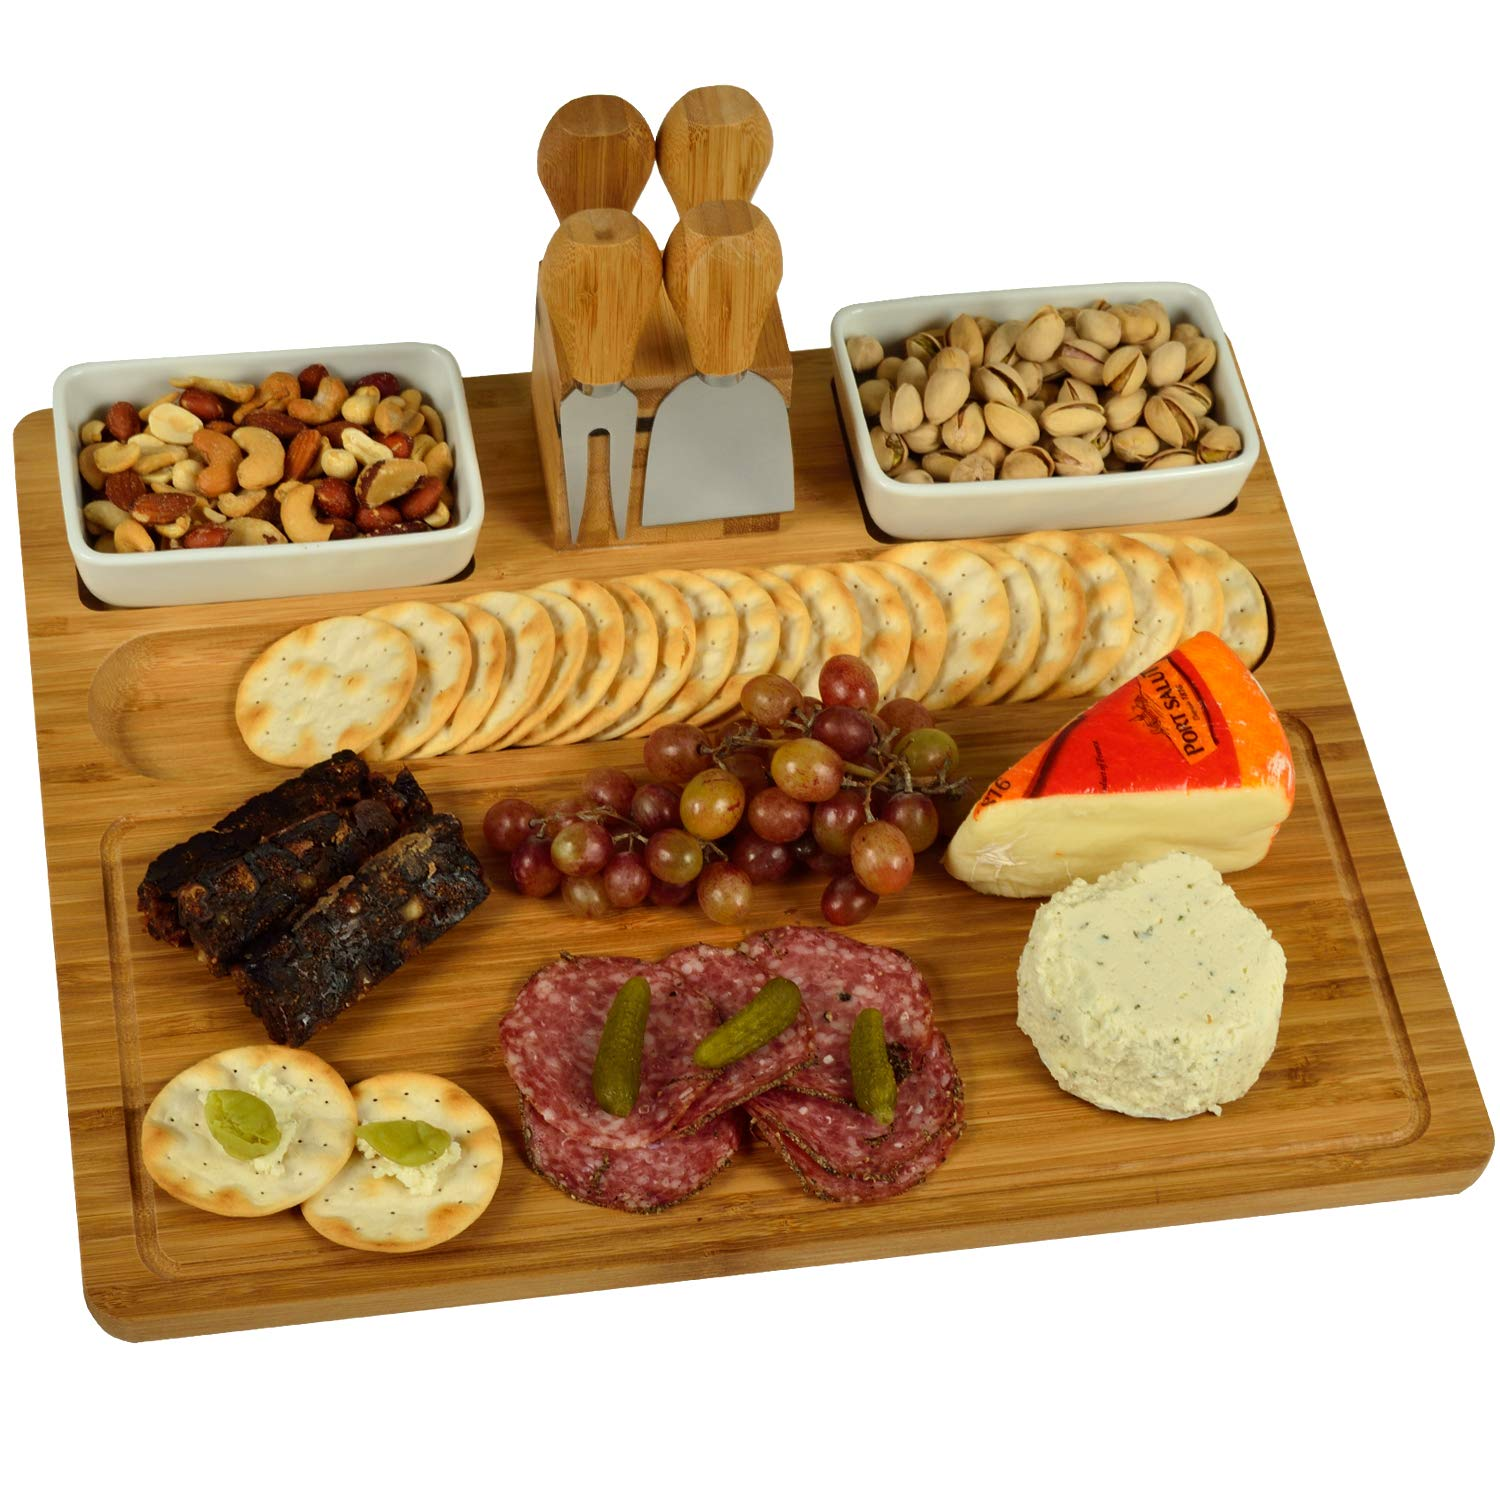 Picnic at Ascot Large Bamboo Cheese/Charcuterie Board with 4 Stainless Steel Cheese Tools & 2 Ceramic Trays with Bamboo Spoons - 16